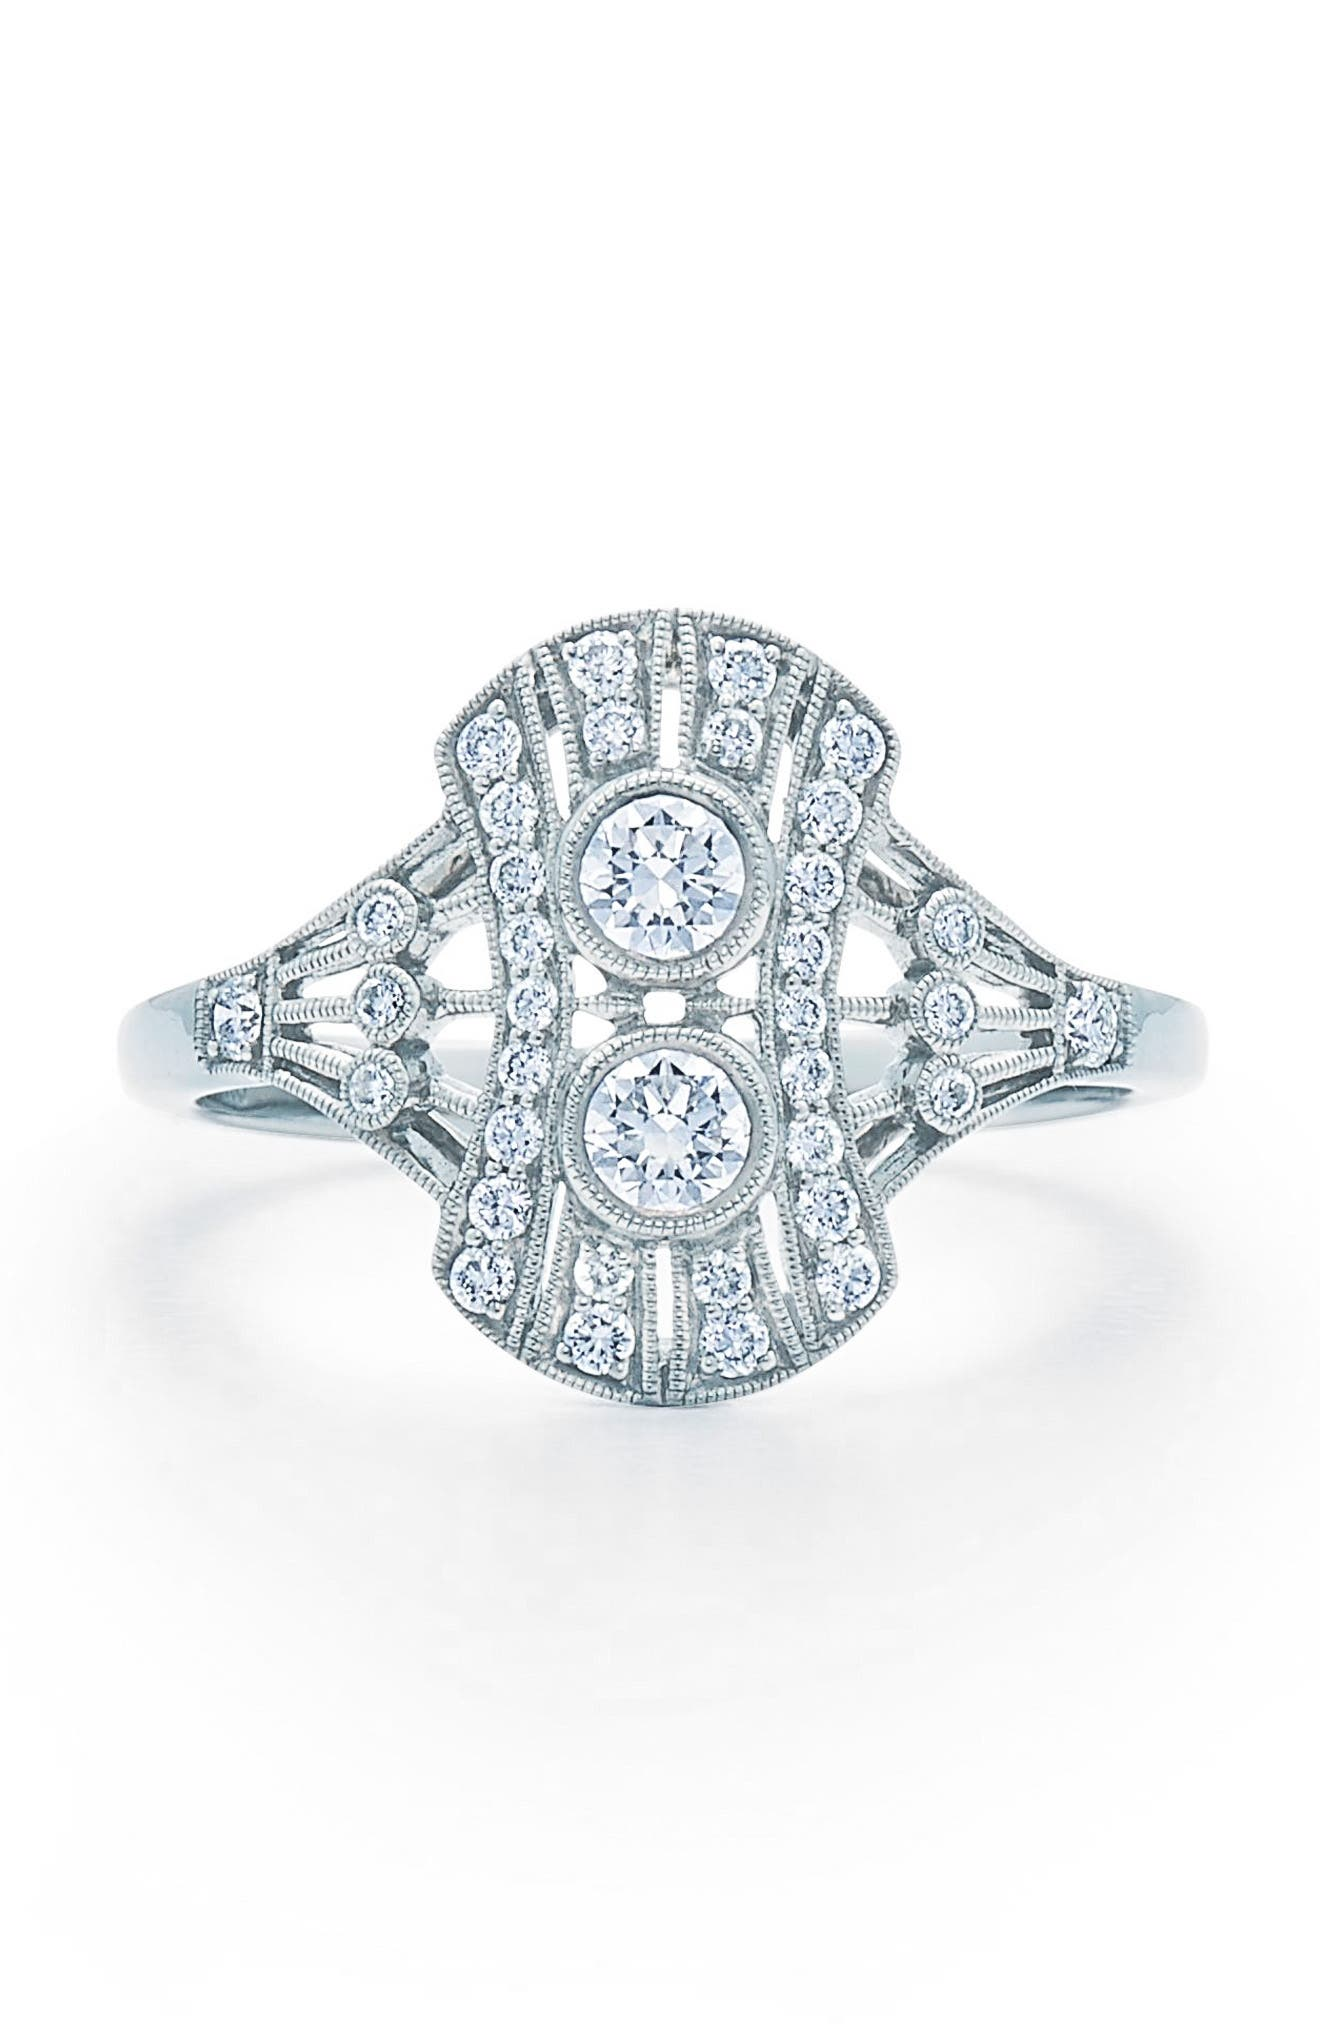 Alternate Image 1 Selected - Kwiat Vintage Oval Diamond Ring